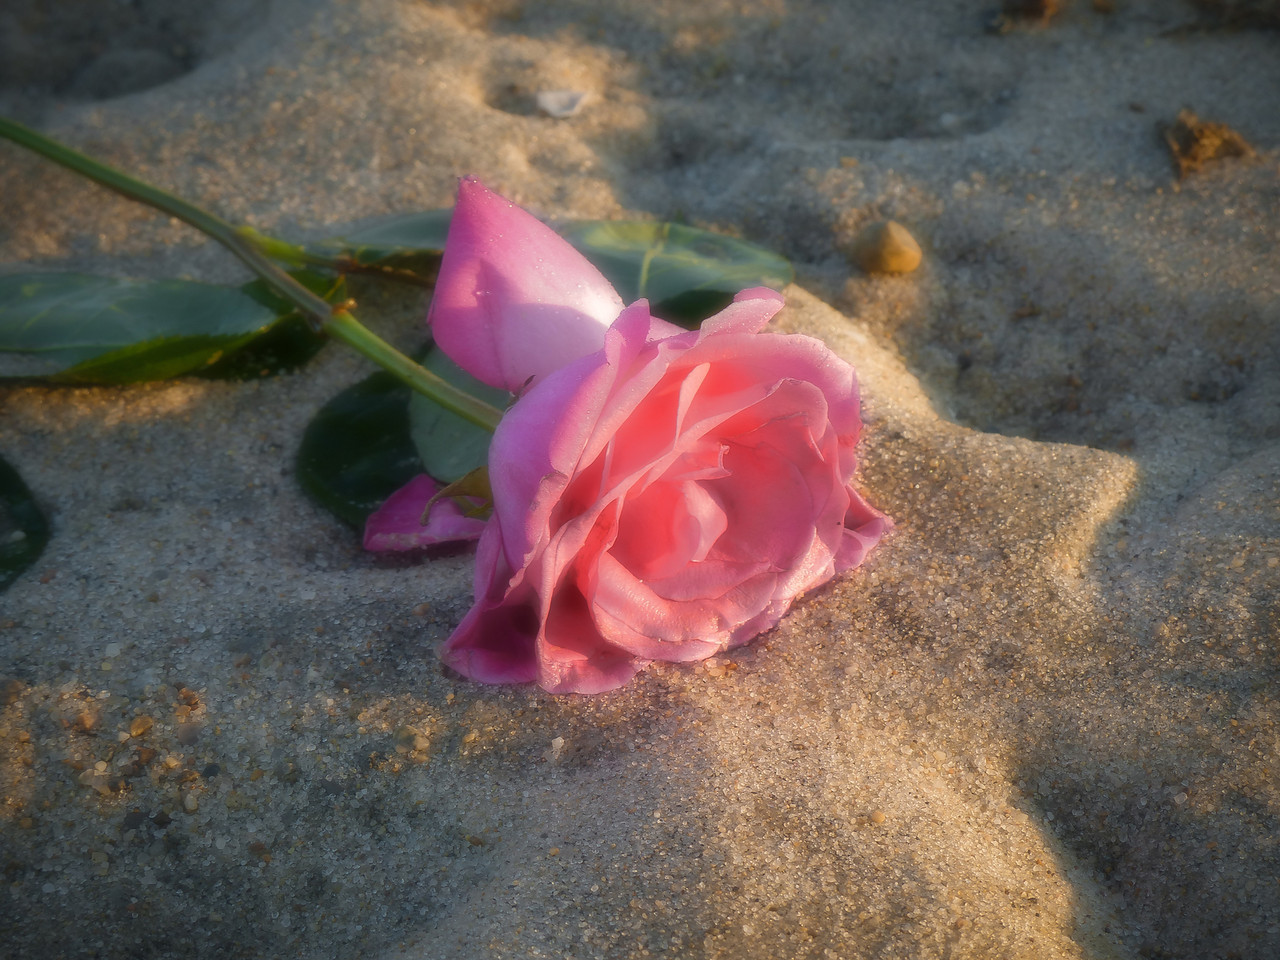 I came across this discarded rose while I walking through the dunes. It fits my mood today.